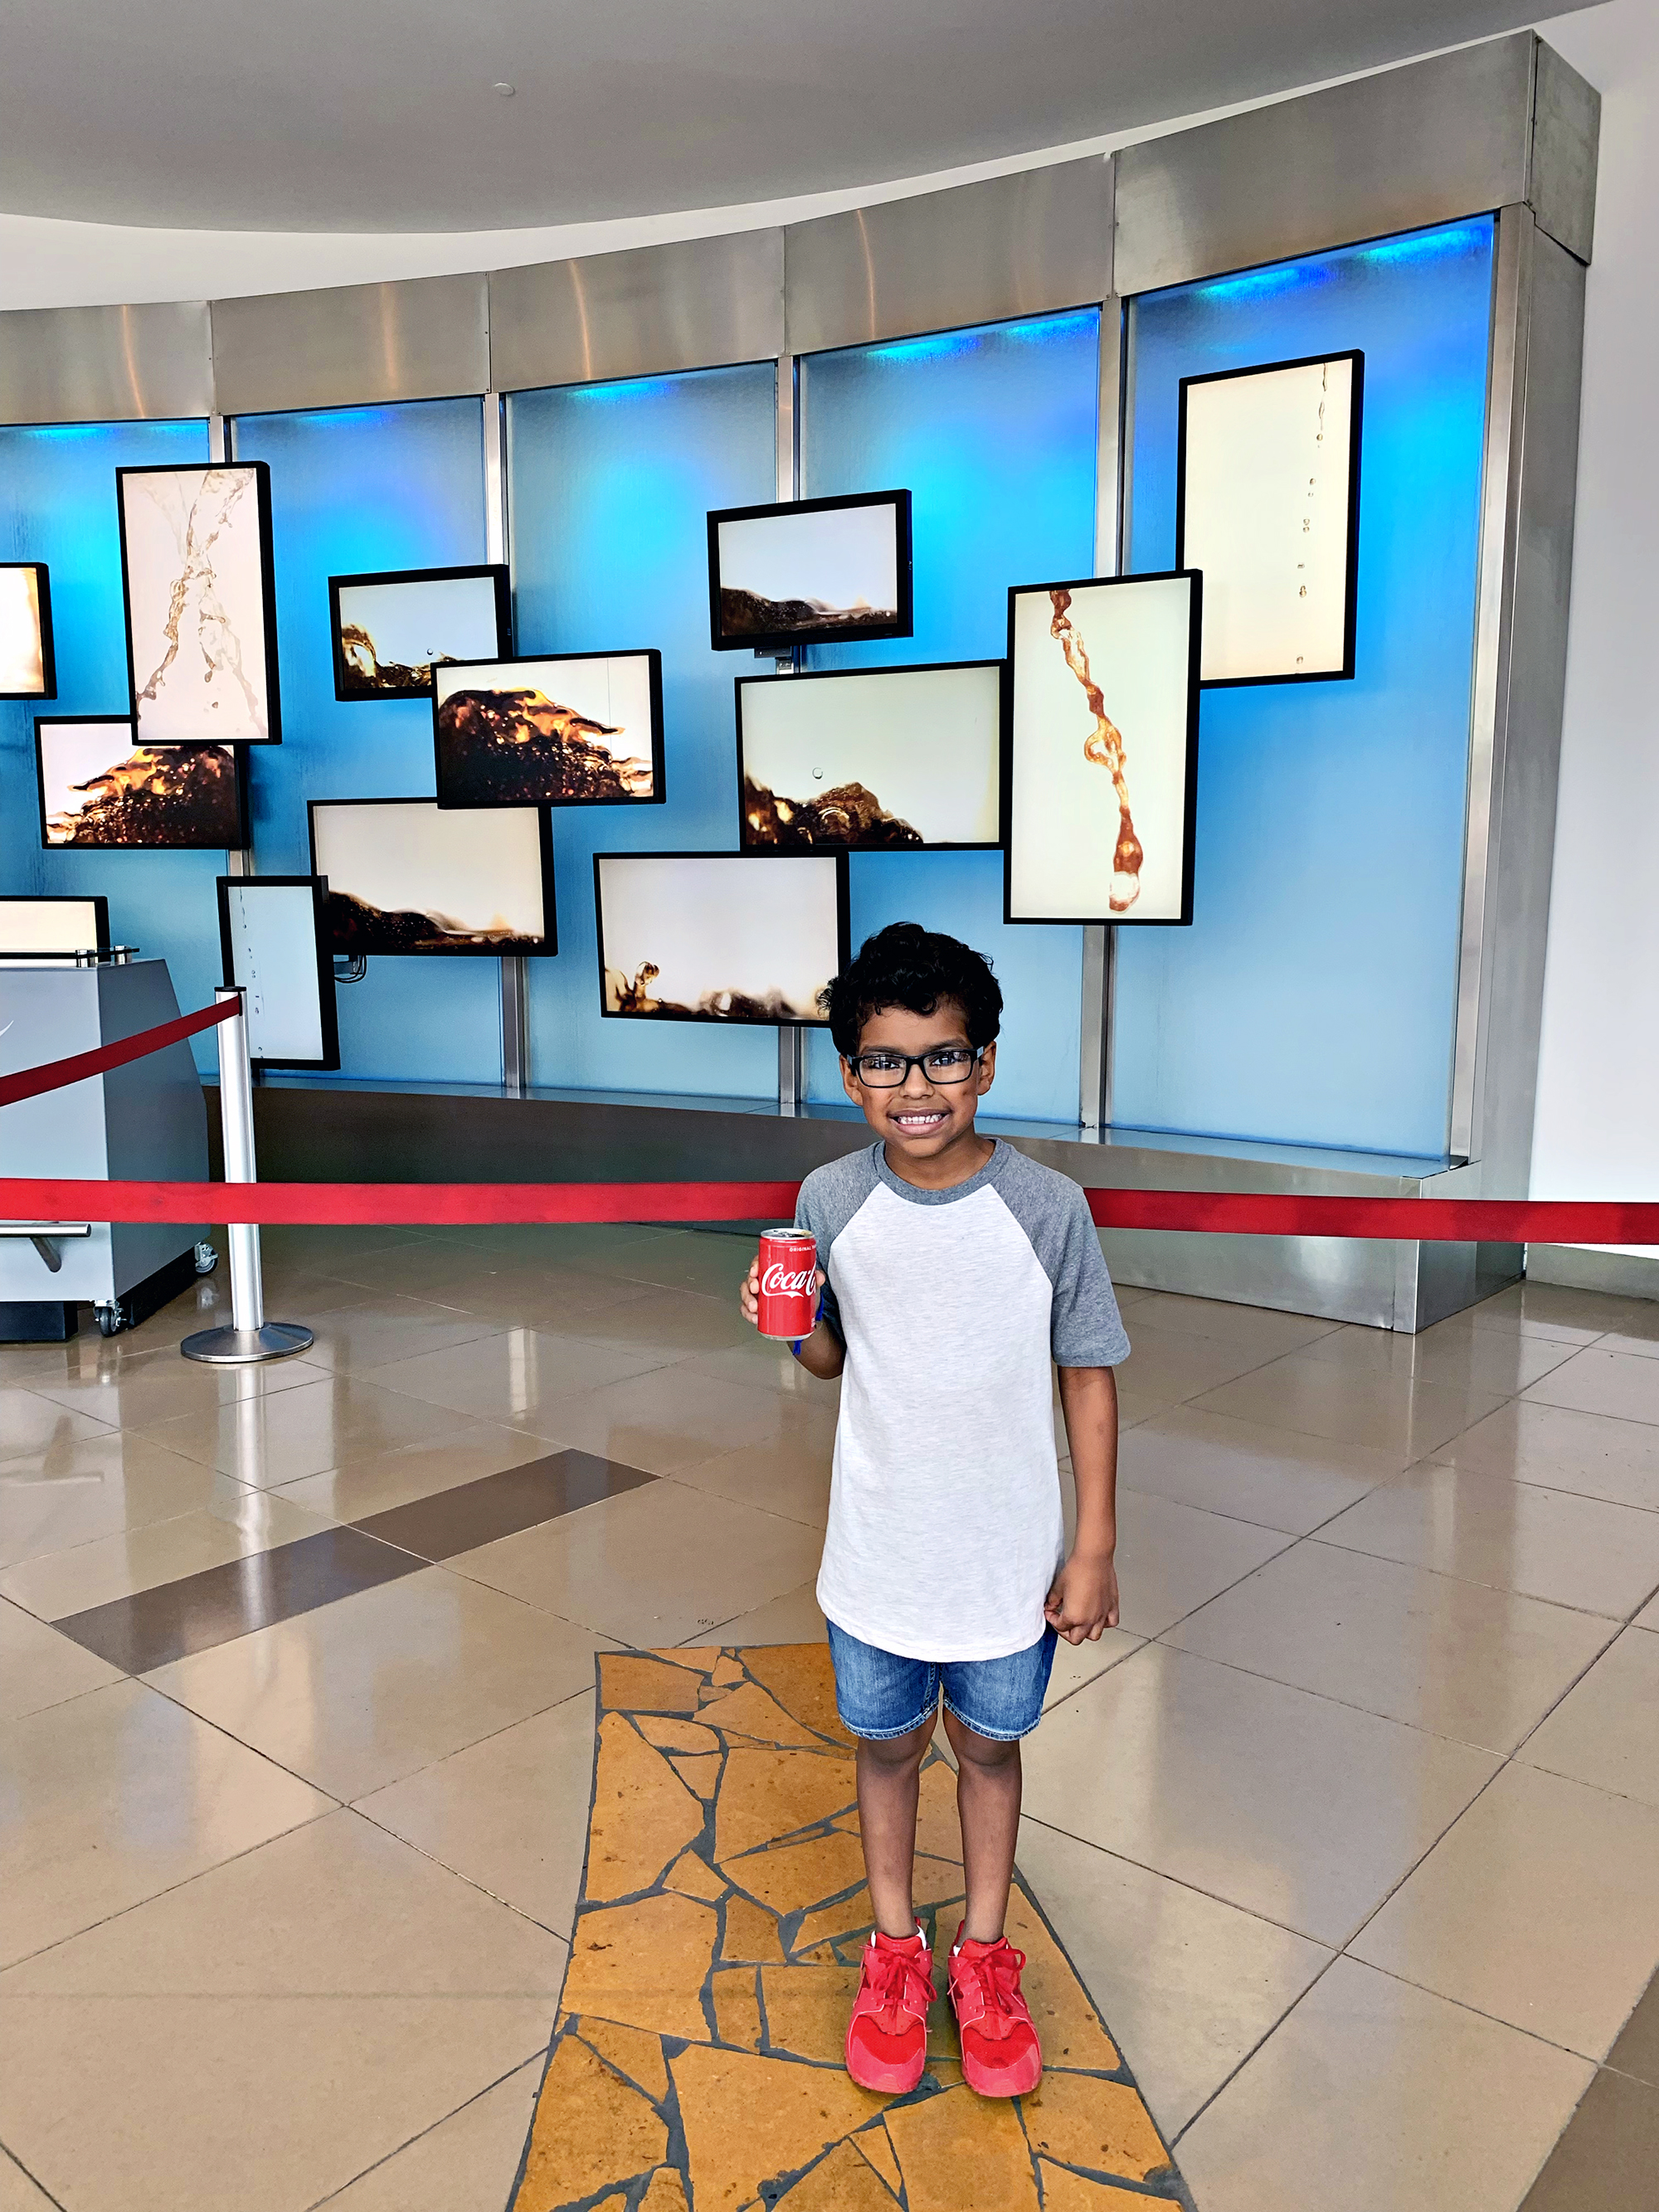 Enjoy a variety of coke products at World of Coca-Cola